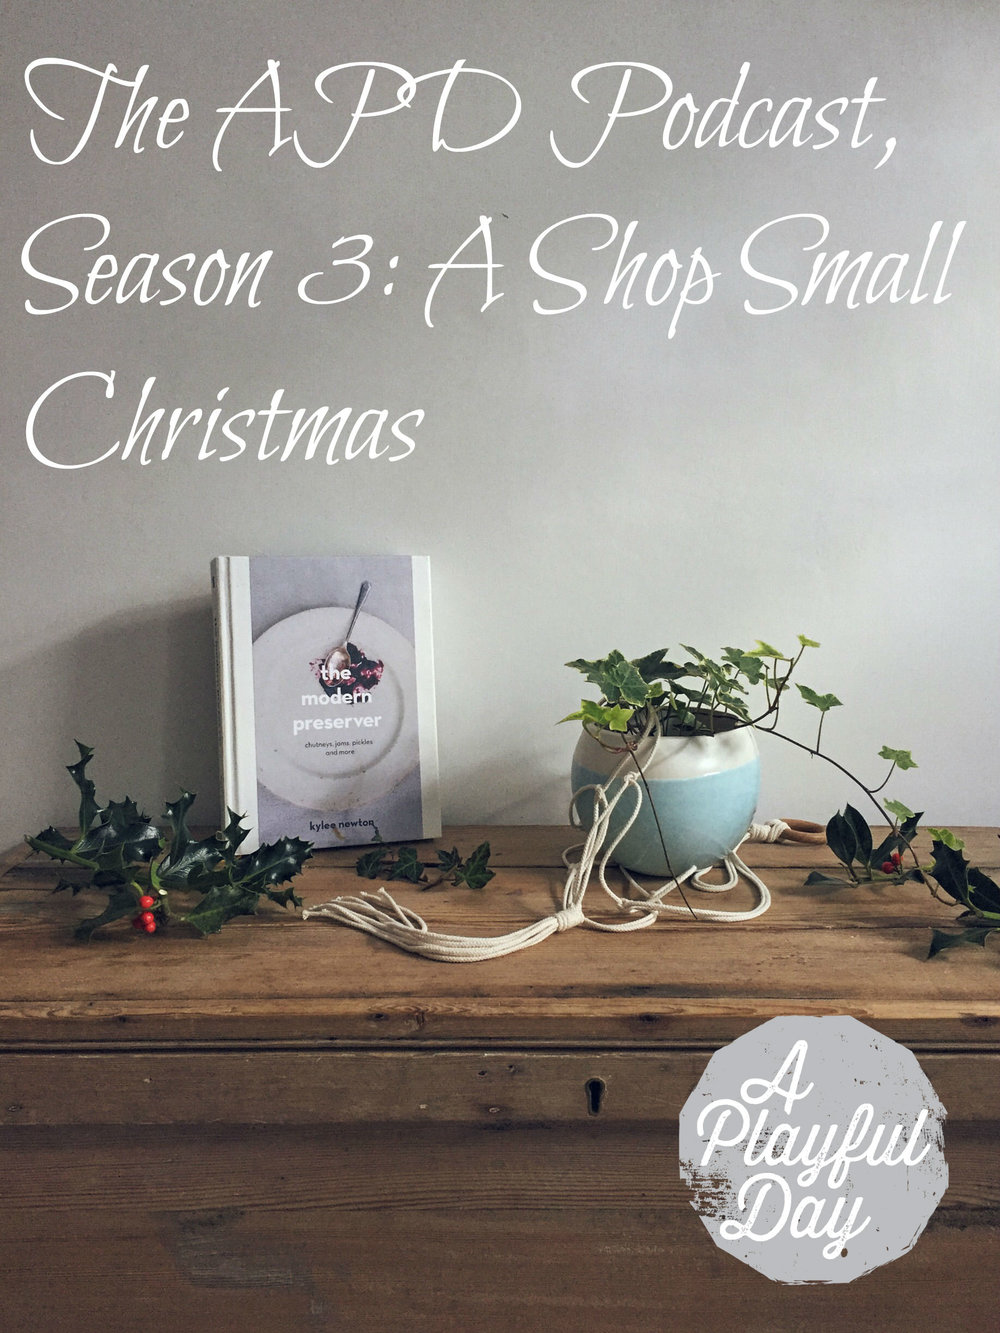 The APD Podcast: A Shop Small Christmas